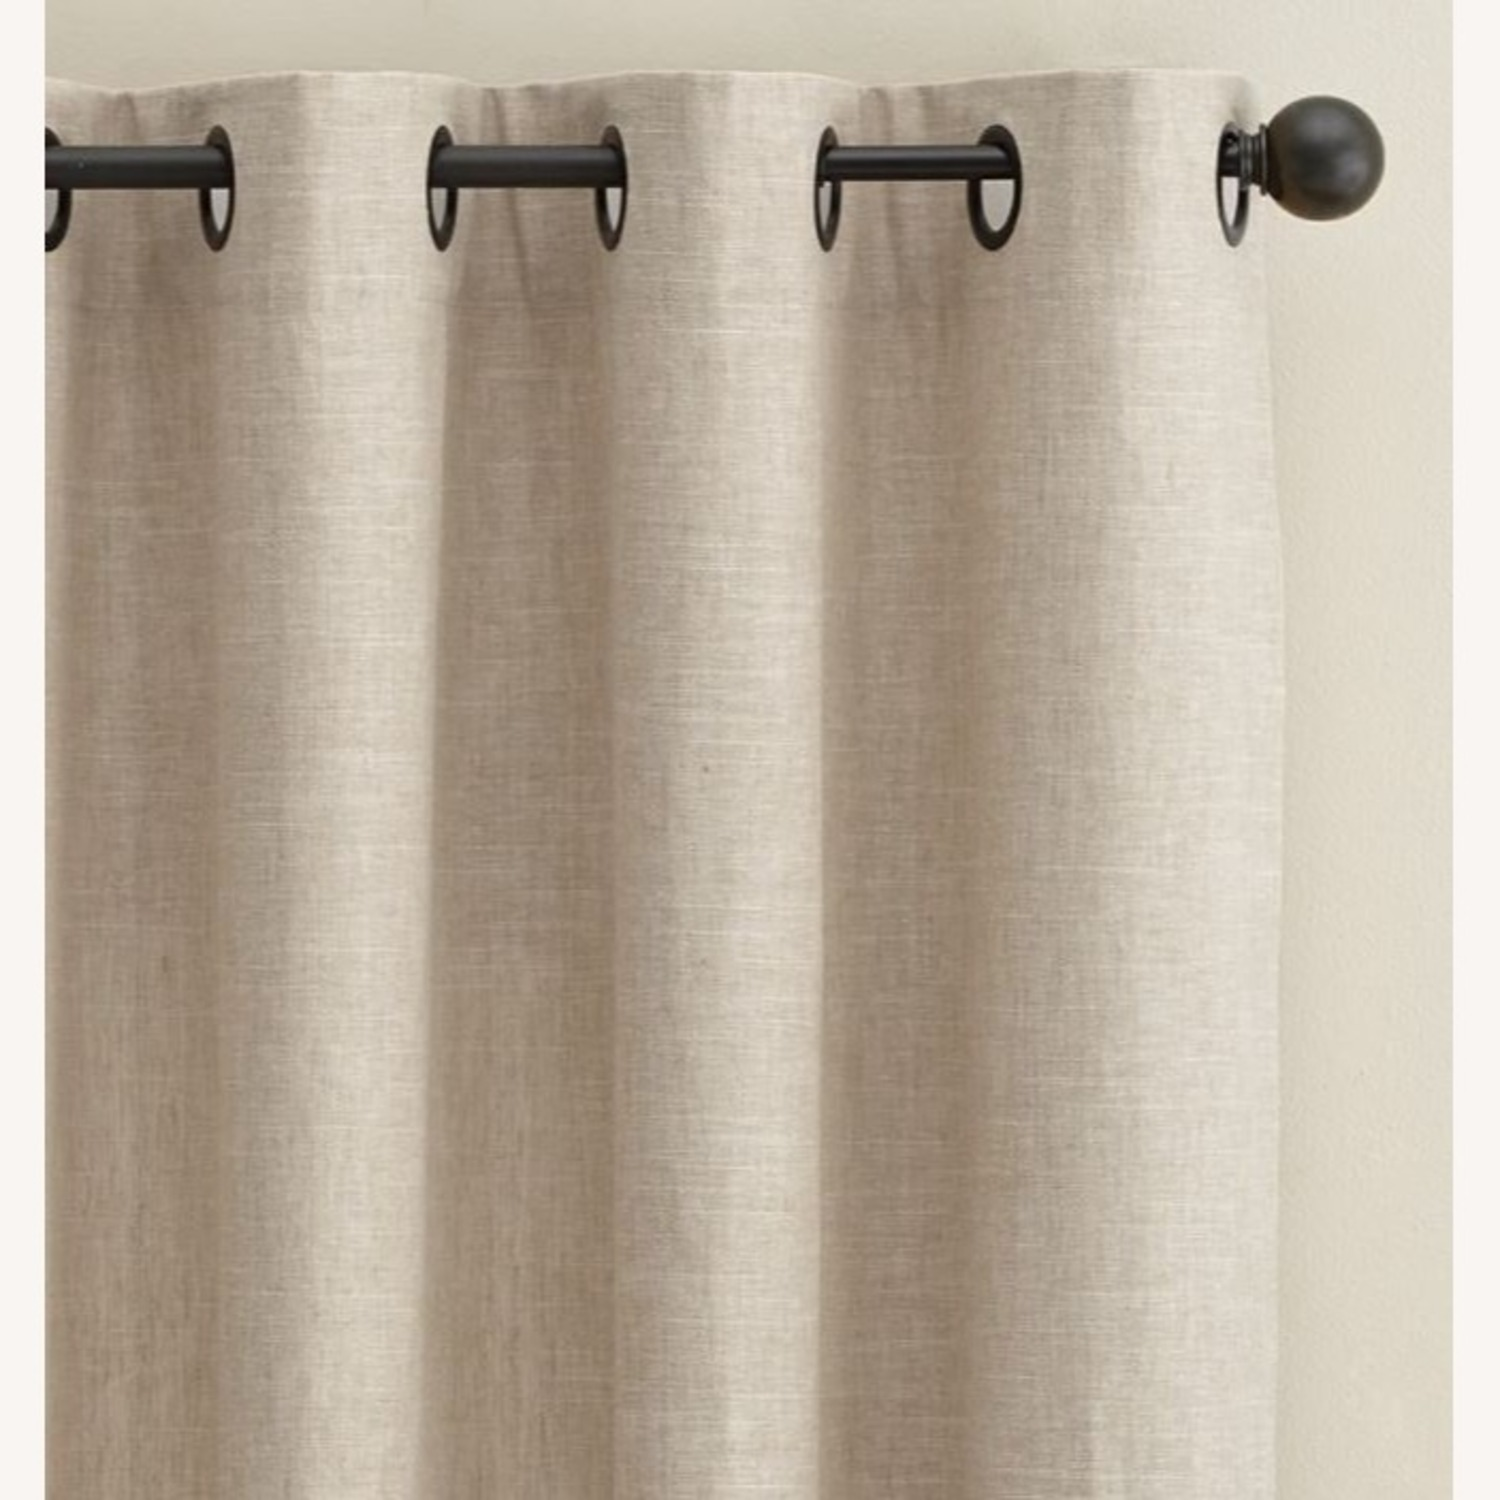 Pottery Barn Linen Curtains with Blackout Liners - image-1